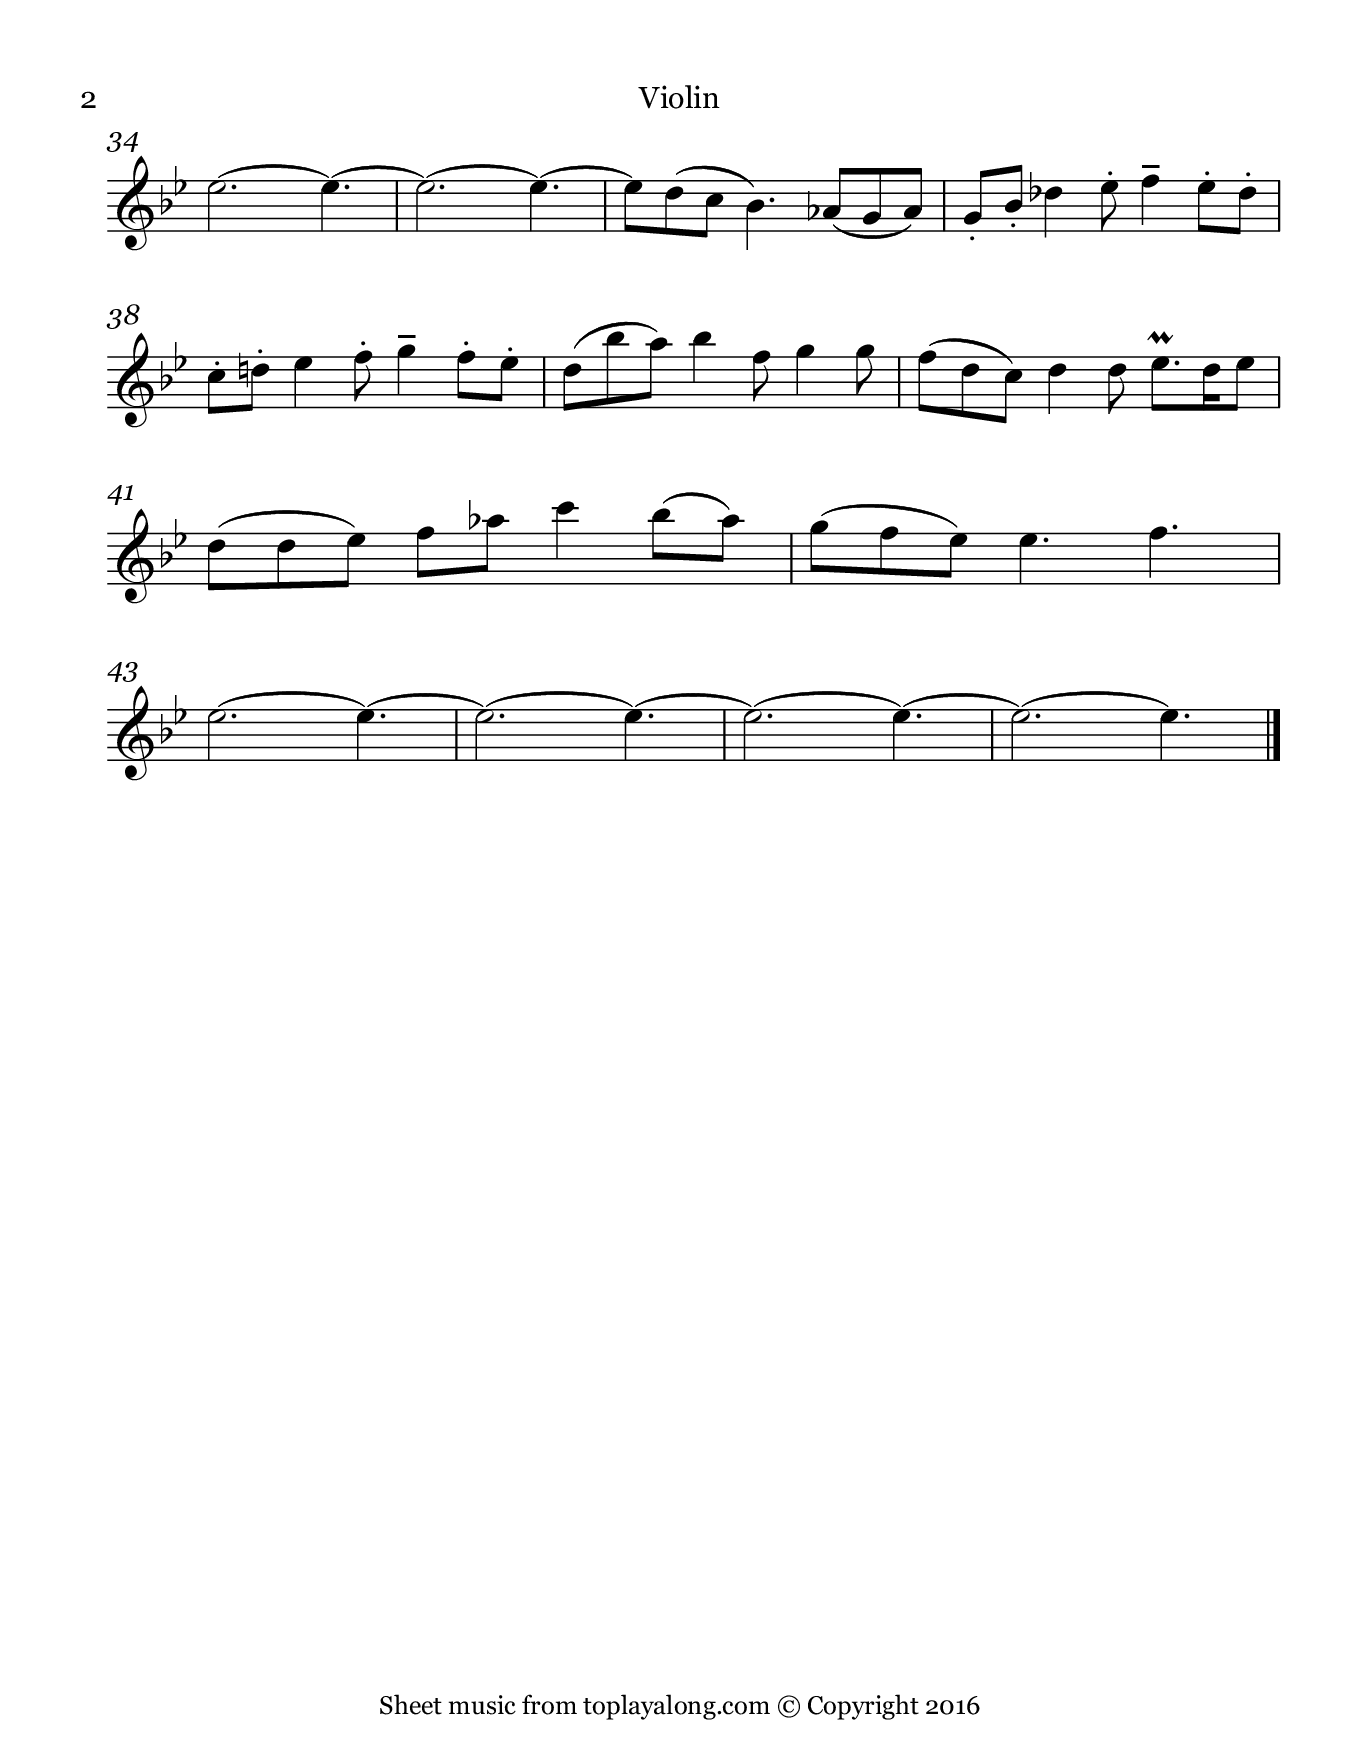 Sonata in G minor BWV 1020 (II. Adagio) by J. S. Bach. Sheet music for Violin, page 2.